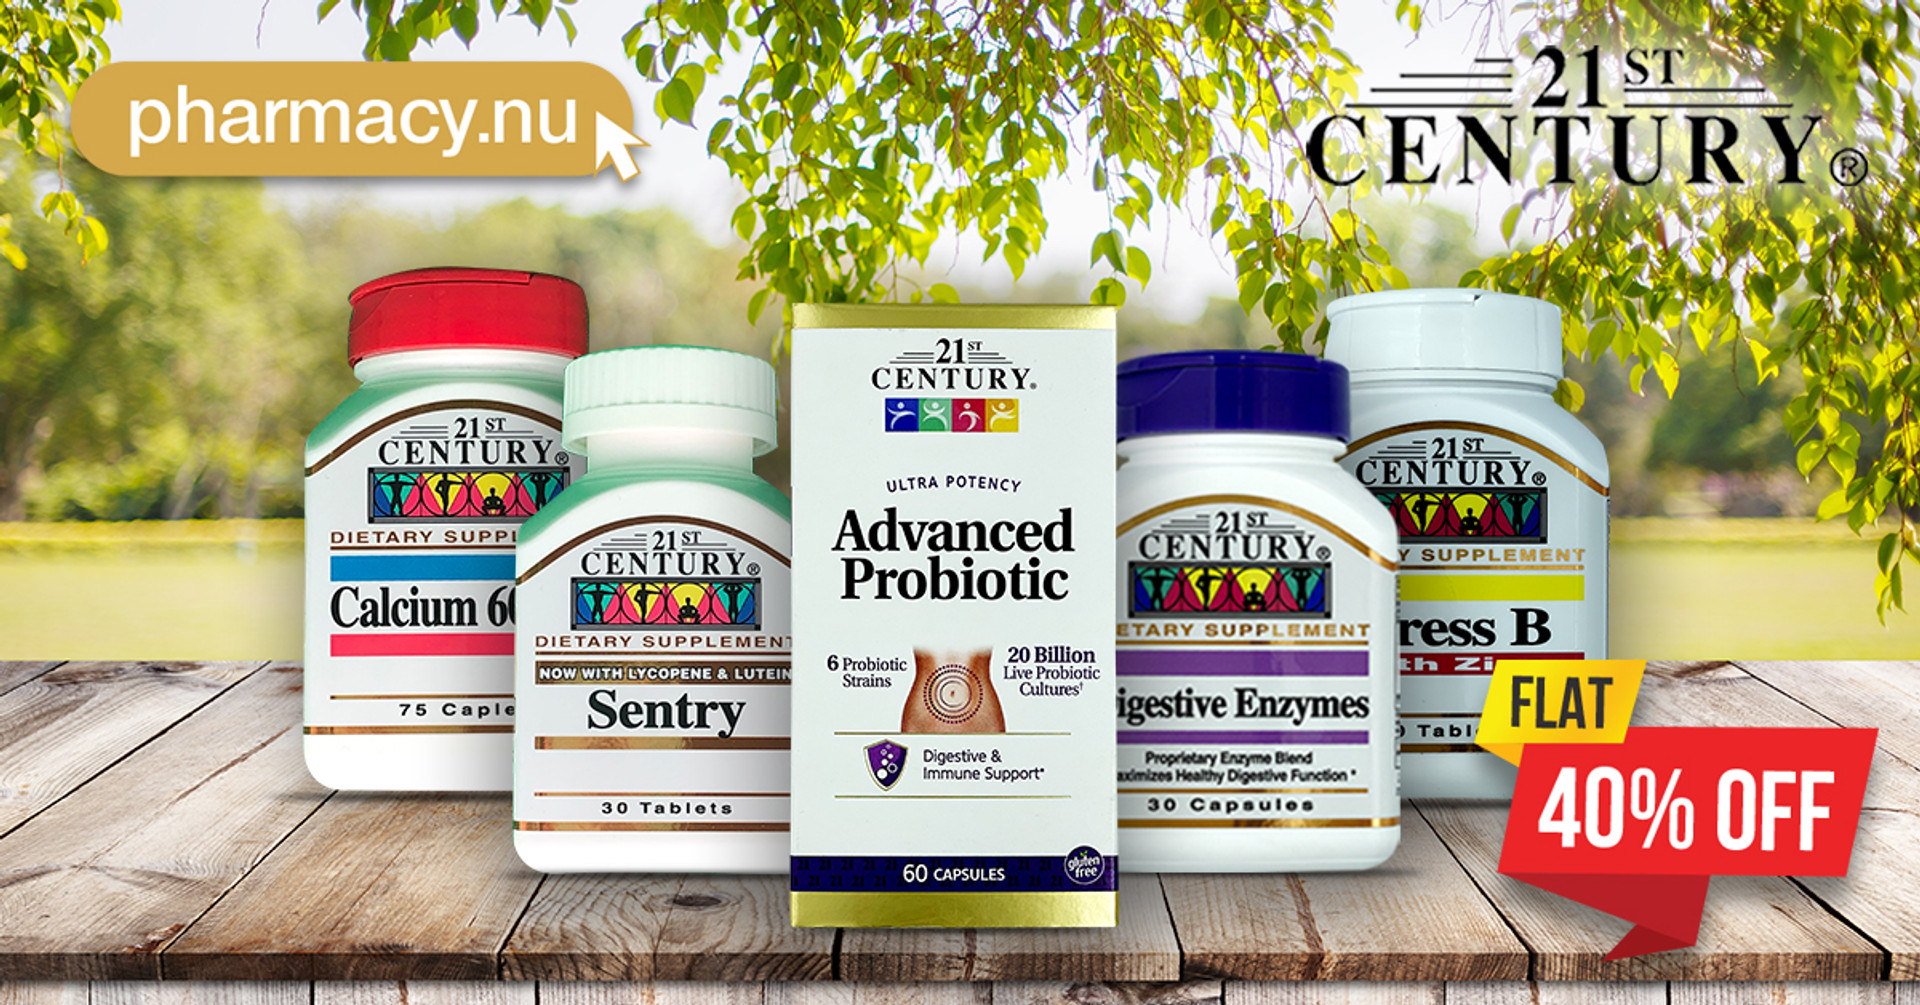 21st Century Vitamins are at 40% Off